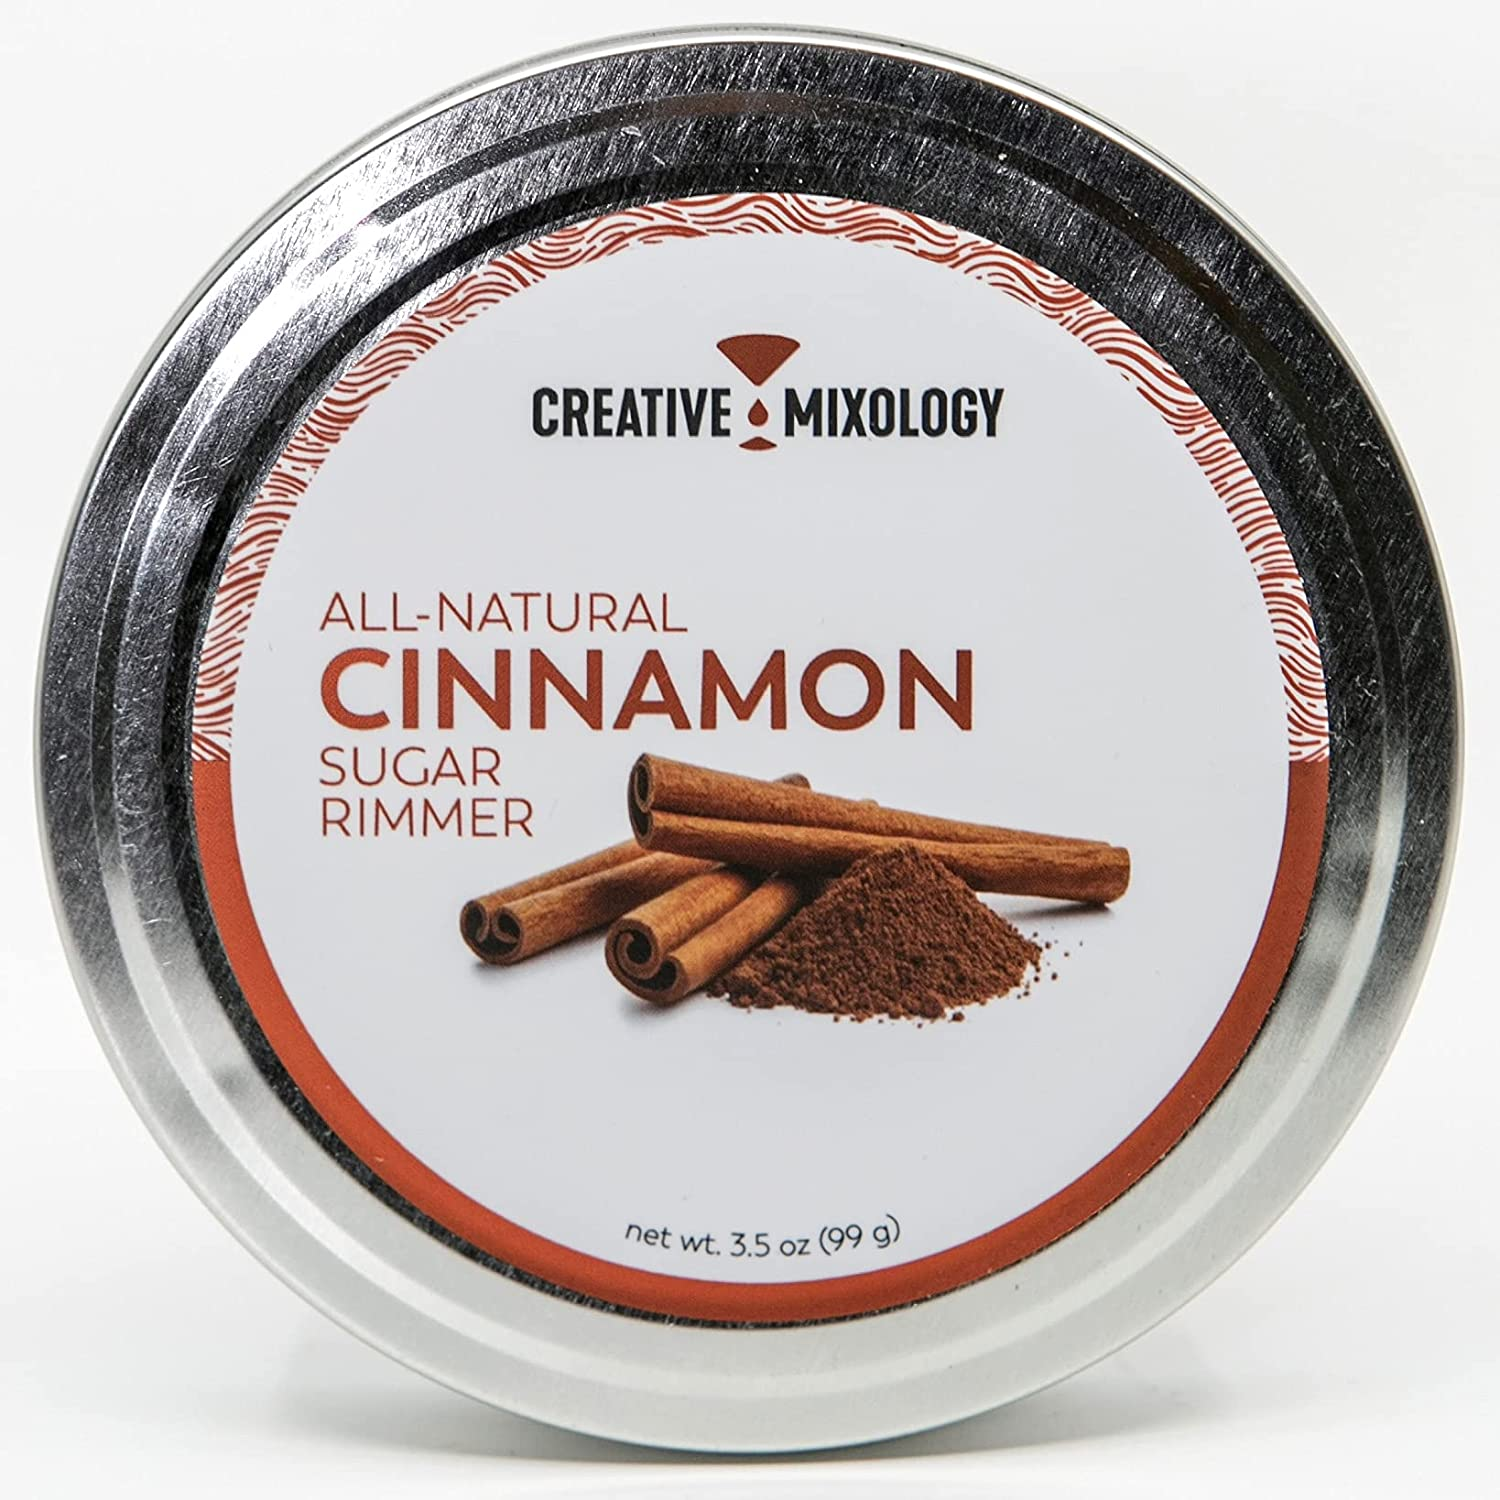 The Manufacturer regenerated product Spice Lab Cinnamon Sugar Martinis for Japan's largest assortment Cocktail Rimmer Glass